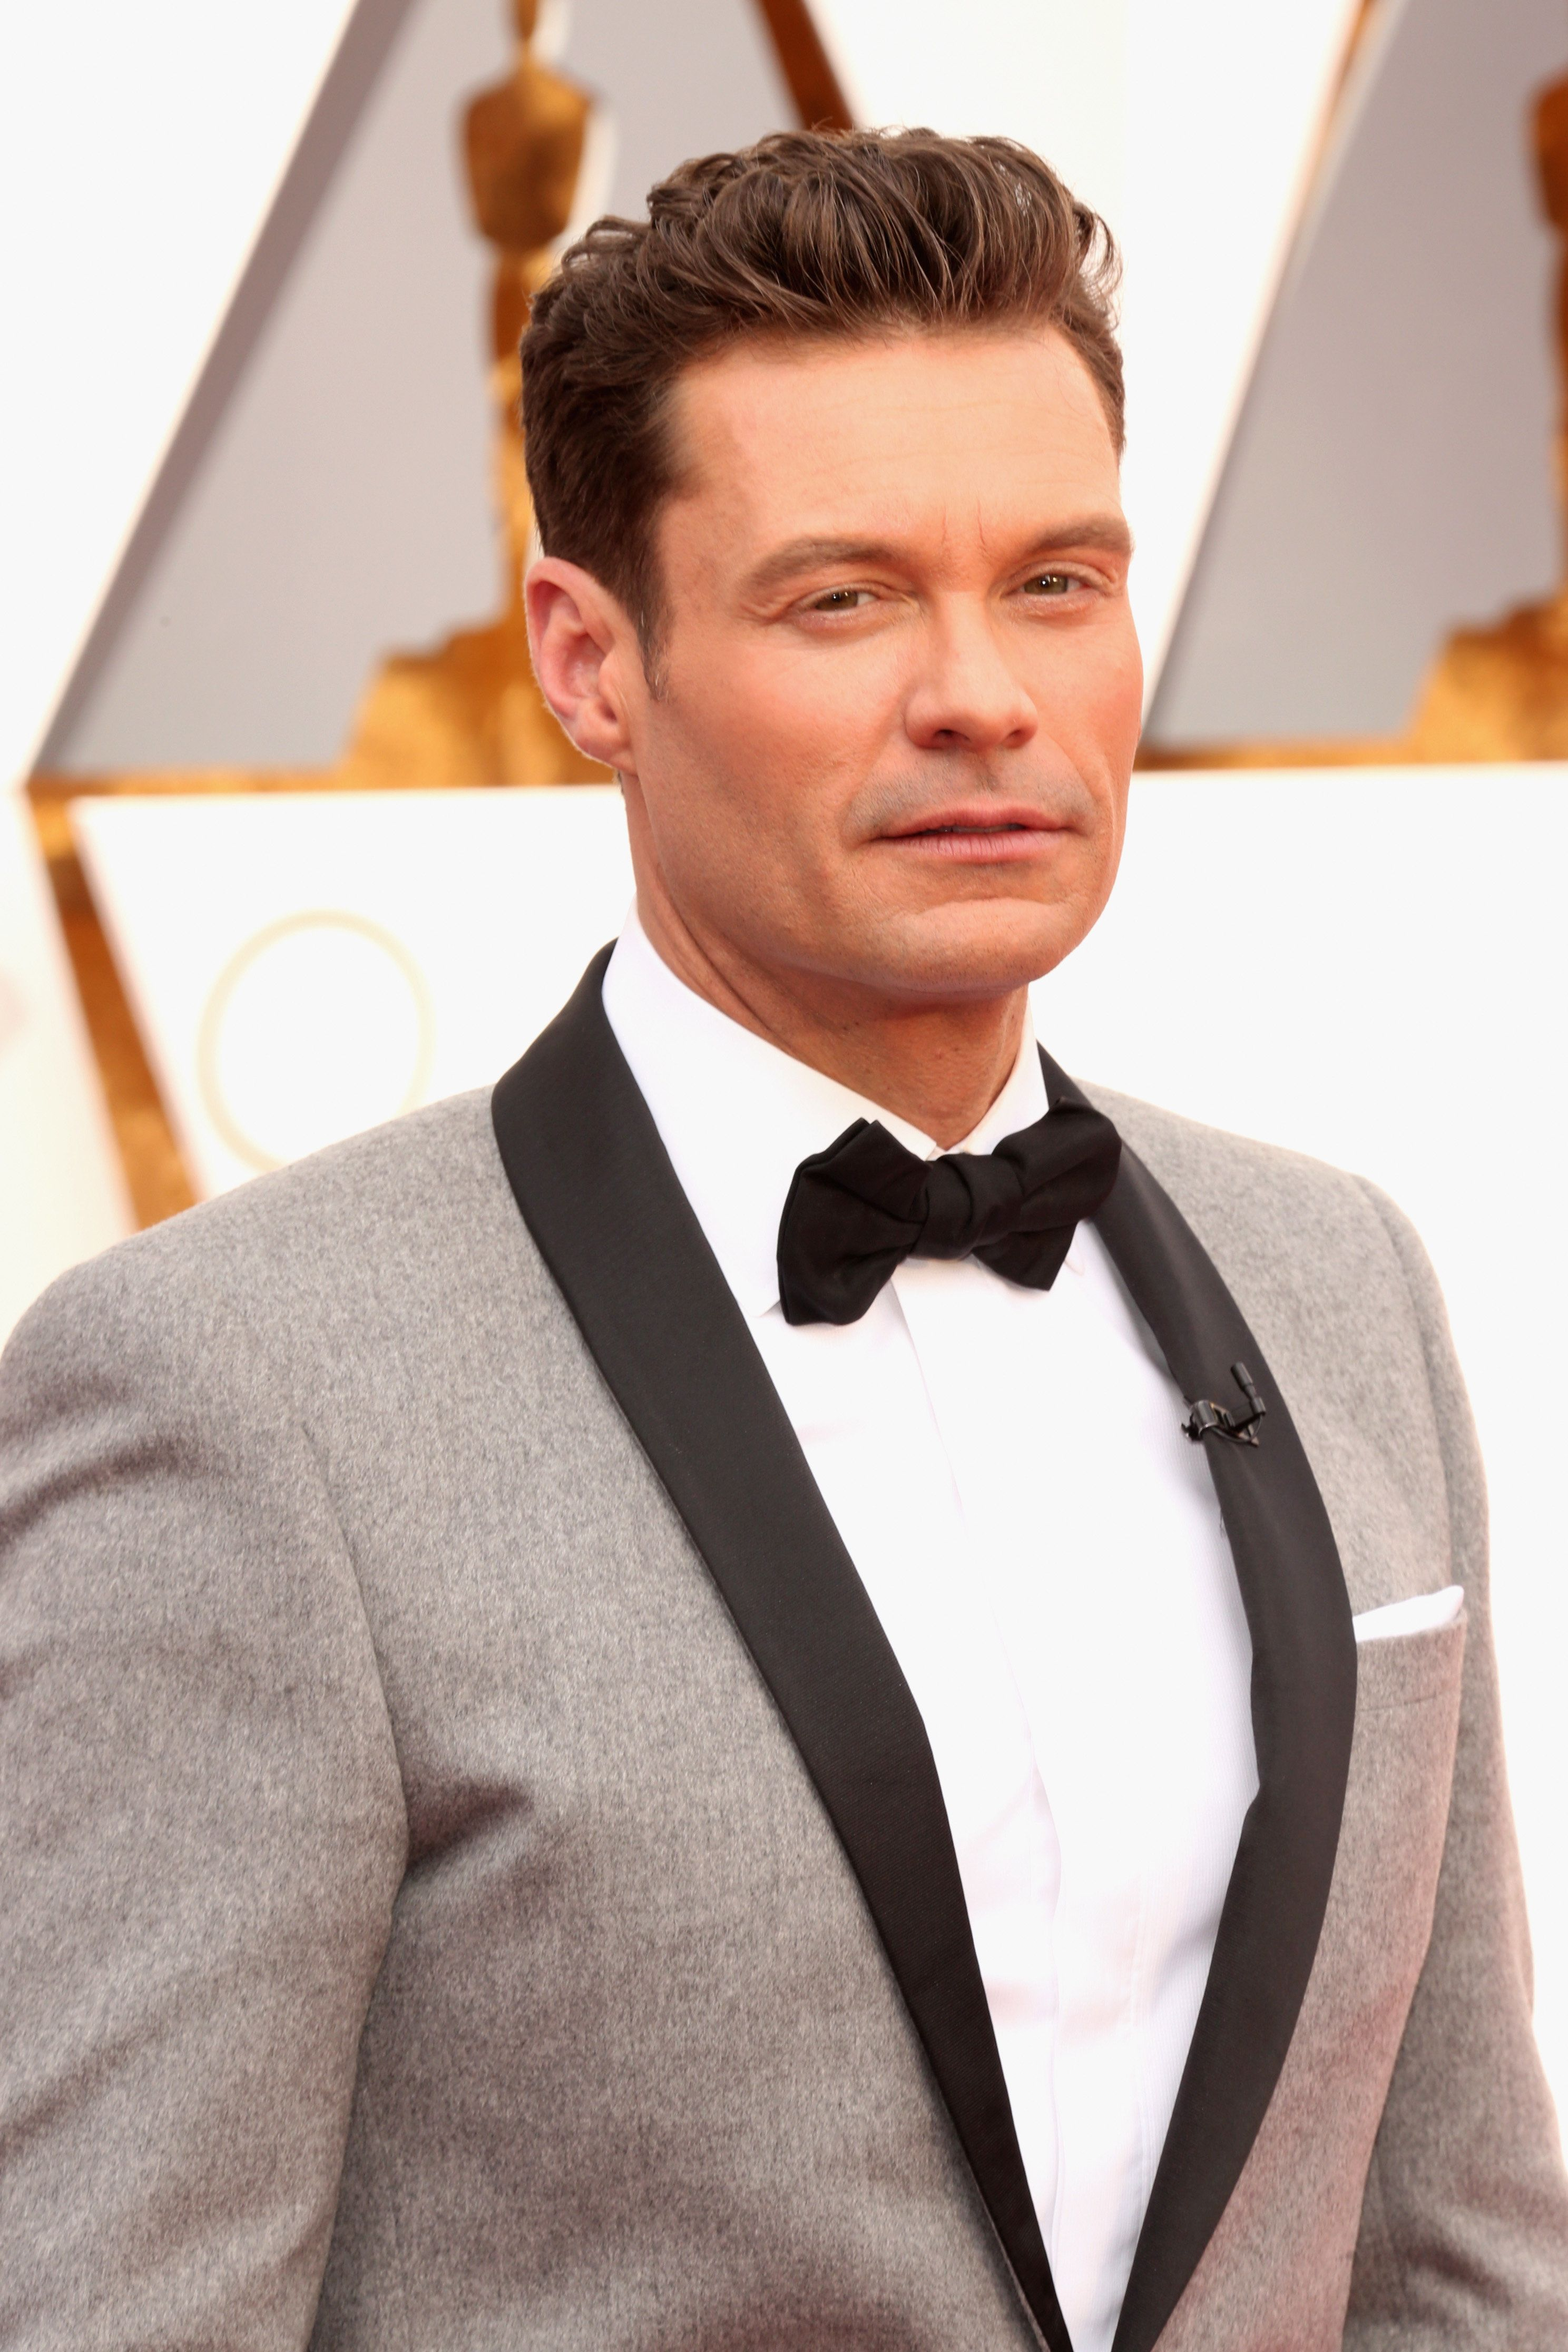 HOLLYWOOD, CA - FEBRUARY 28:  Radio and television personality Ryan Seacrest attends the 88th Annual Academy Awards at Hollywood & Highland Center on February 28, 2016 in Hollywood, California.  (Photo by Todd Williamson/Getty Images)